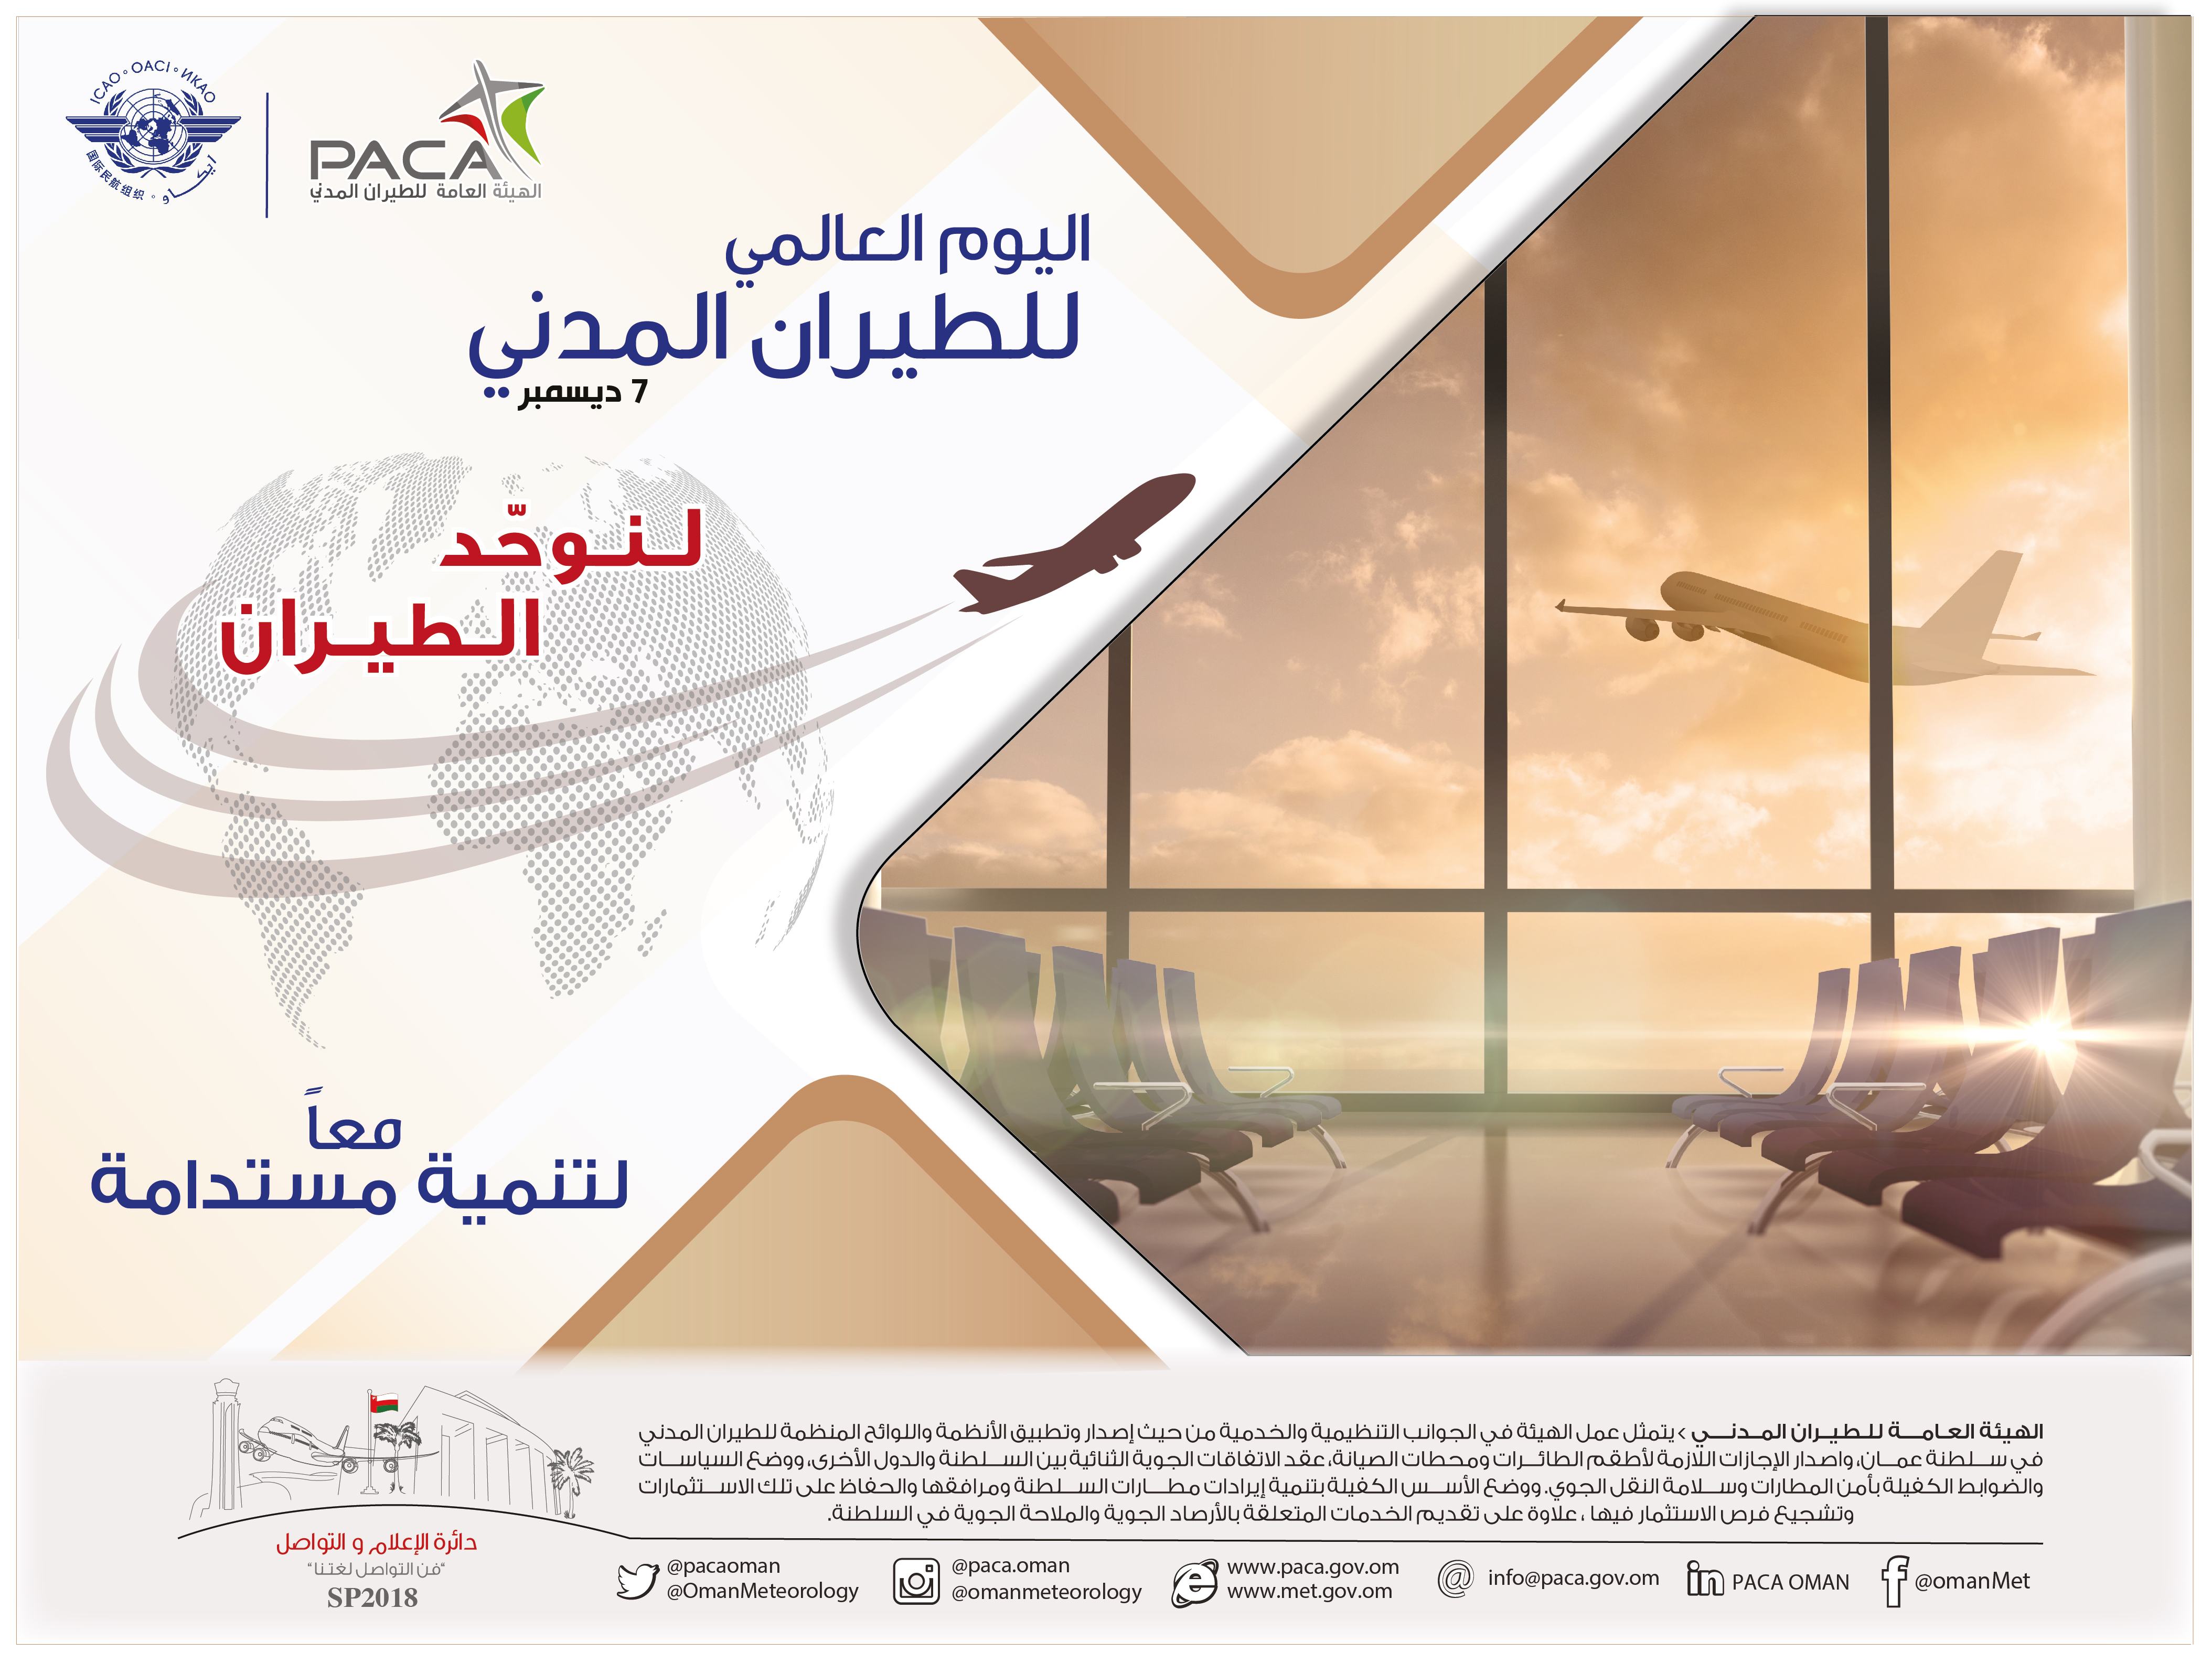 The Sultanate of Oman Celebrated International Civil Aviation Day on 7 December at Muscat International Airport—A Place of Pride and Honour for the Sultanate at the Regional